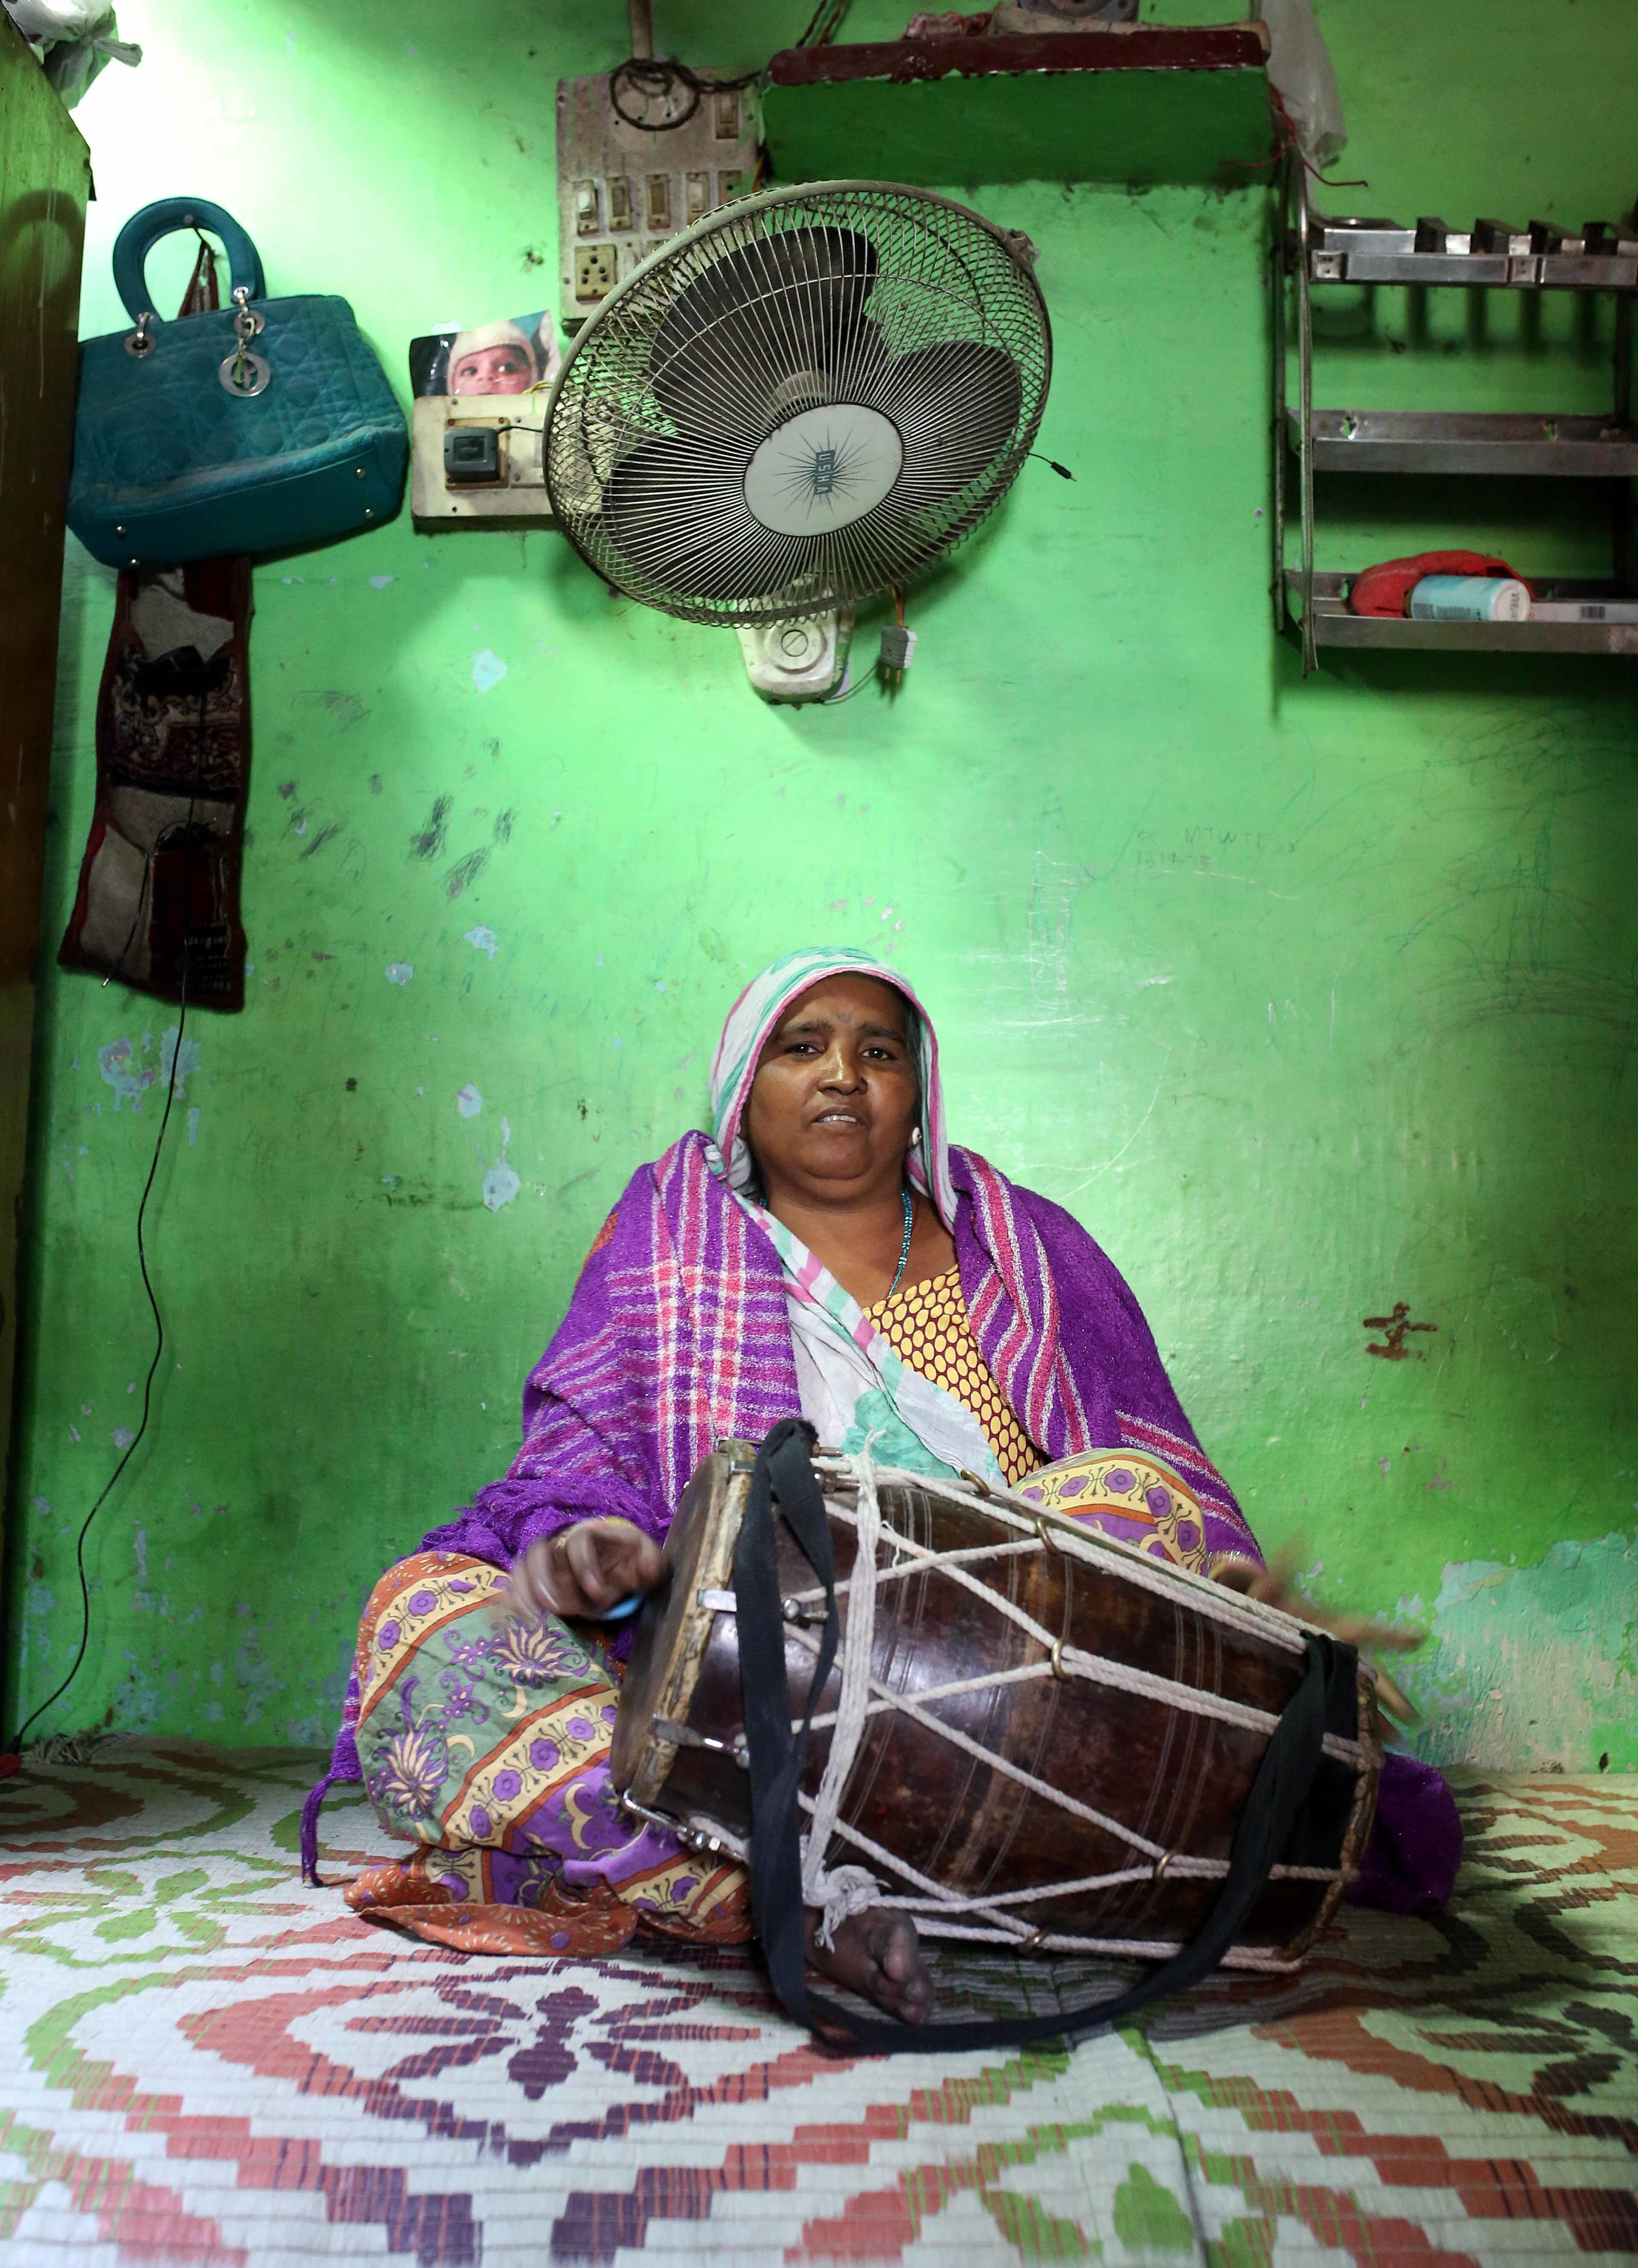 Kamla Bhatt, mother of Aarti, is pictured singing and playing the drums at her home in the Kathputli slum colony of New Delhi, India, December 7th, 2014. She is one of 40,000 people living in the slum, which is popularly known for being the worlds largest colony of street performers, including magicians, snake charmers, acrobats, singers, dancers, actors, traditional healers and musicians and puppeteers. Their livelihood is under threat however as the Delhi government has obtained contracts to demolish the colony to make way for developers to build high-rise apartments.